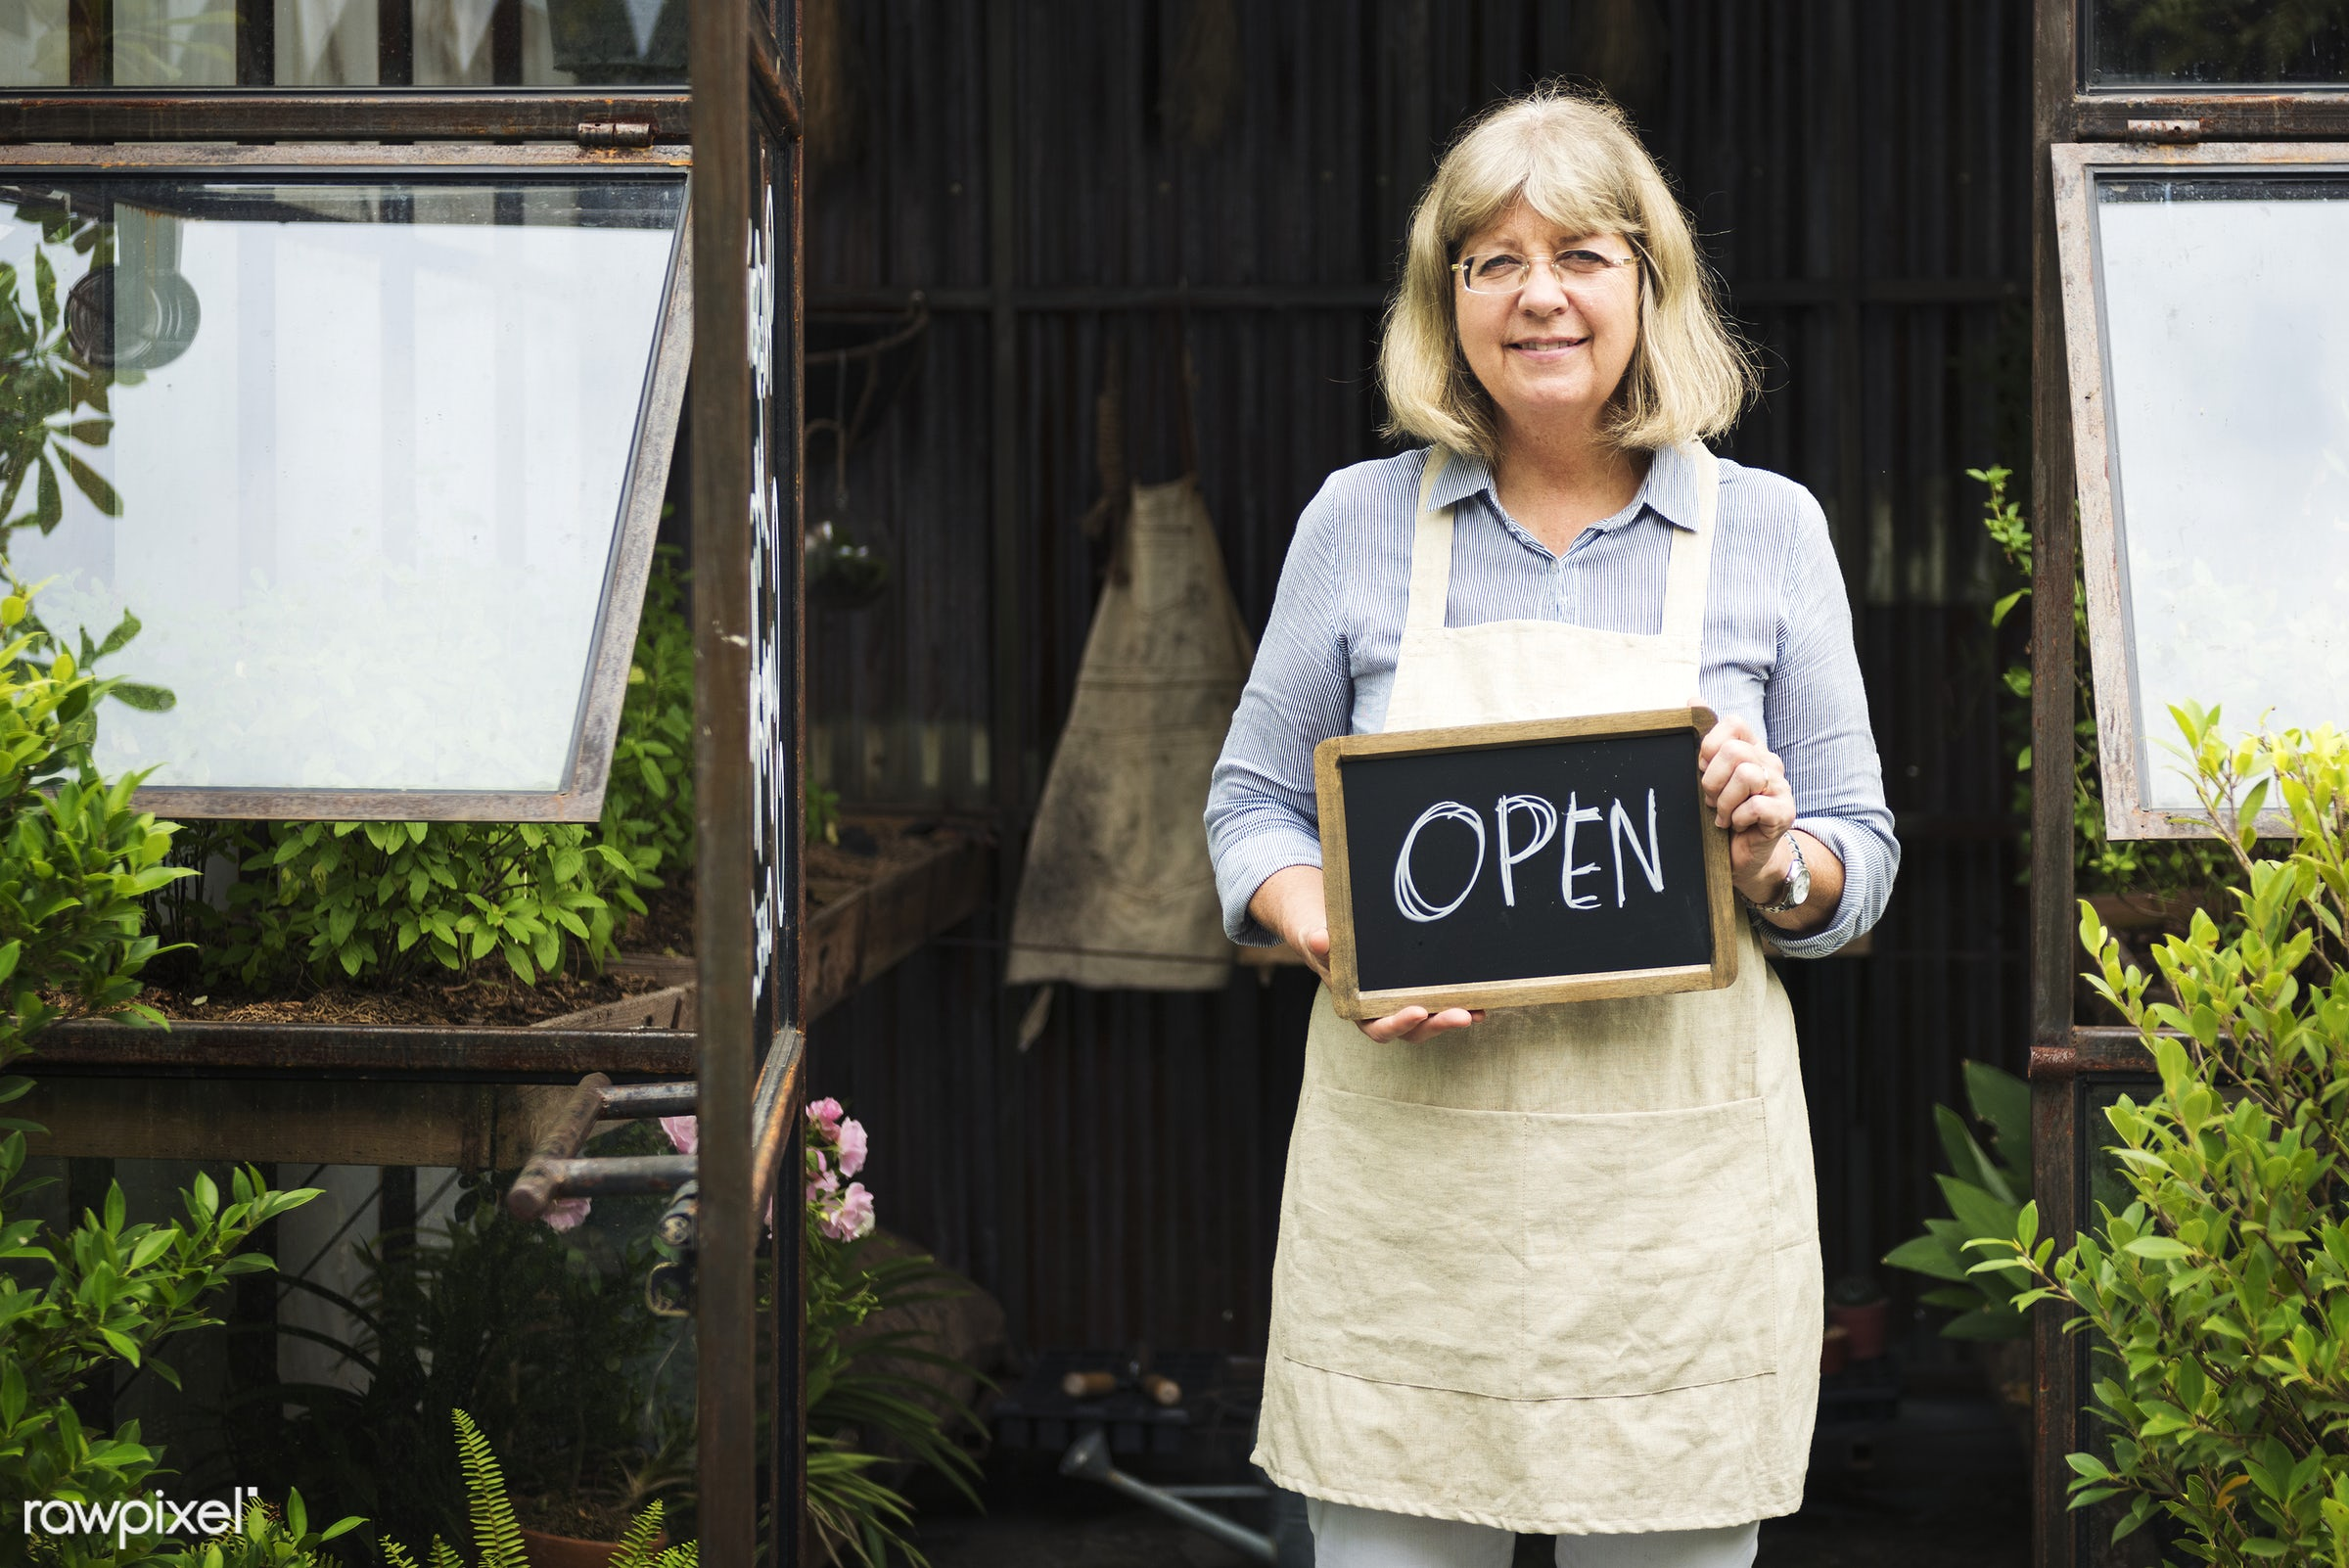 Old caucasian woman with open sign - business, elderly, garden, greenhouse, holding, lady, old, open, people, plants, senior...